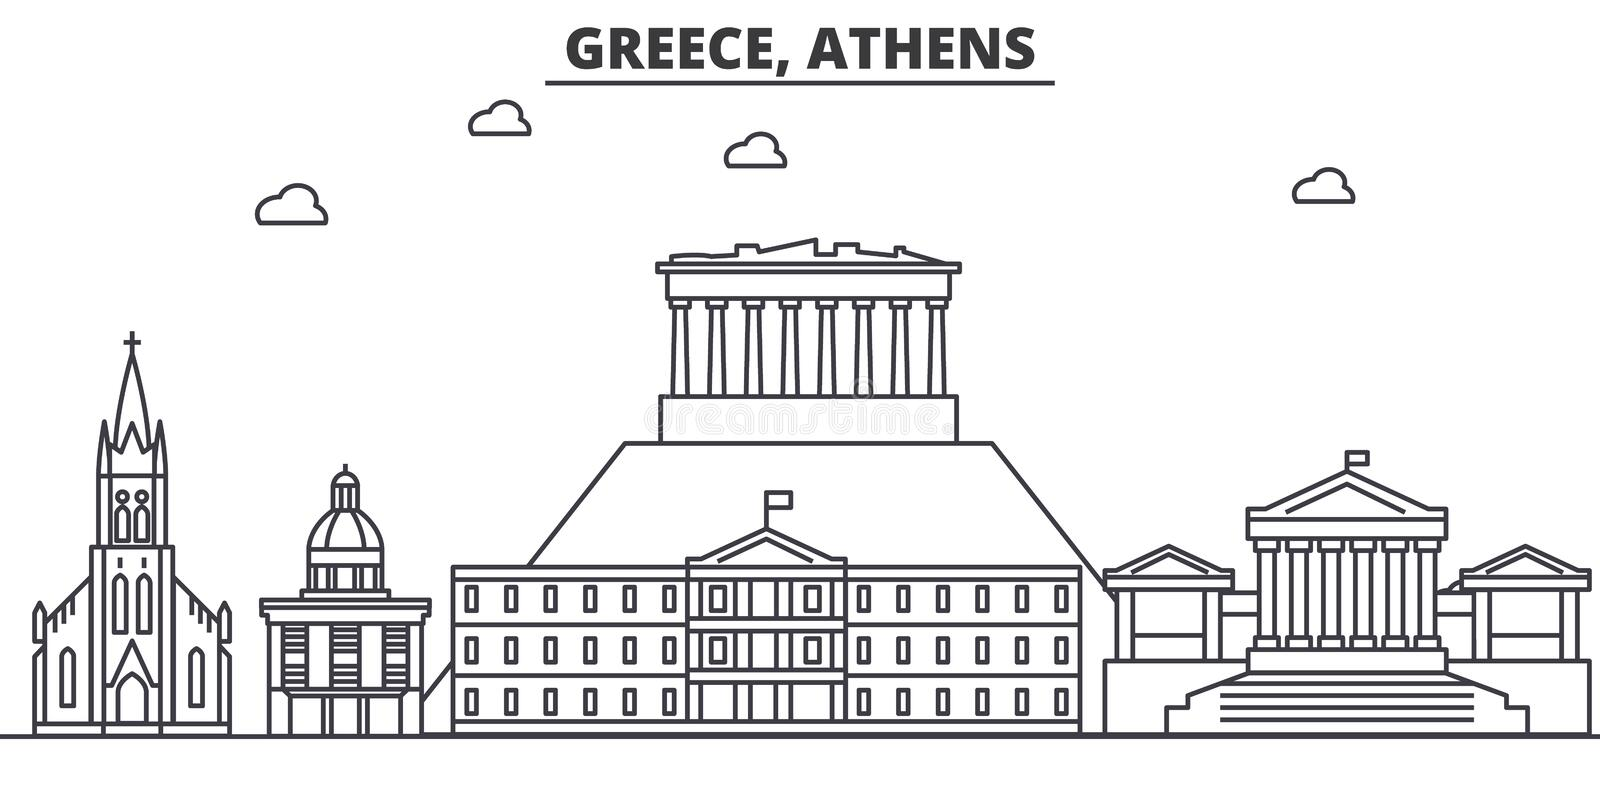 Greece, Athens architecture line skyline illustration. Linear vector cityscape with famous landmarks, city sights vector illustration